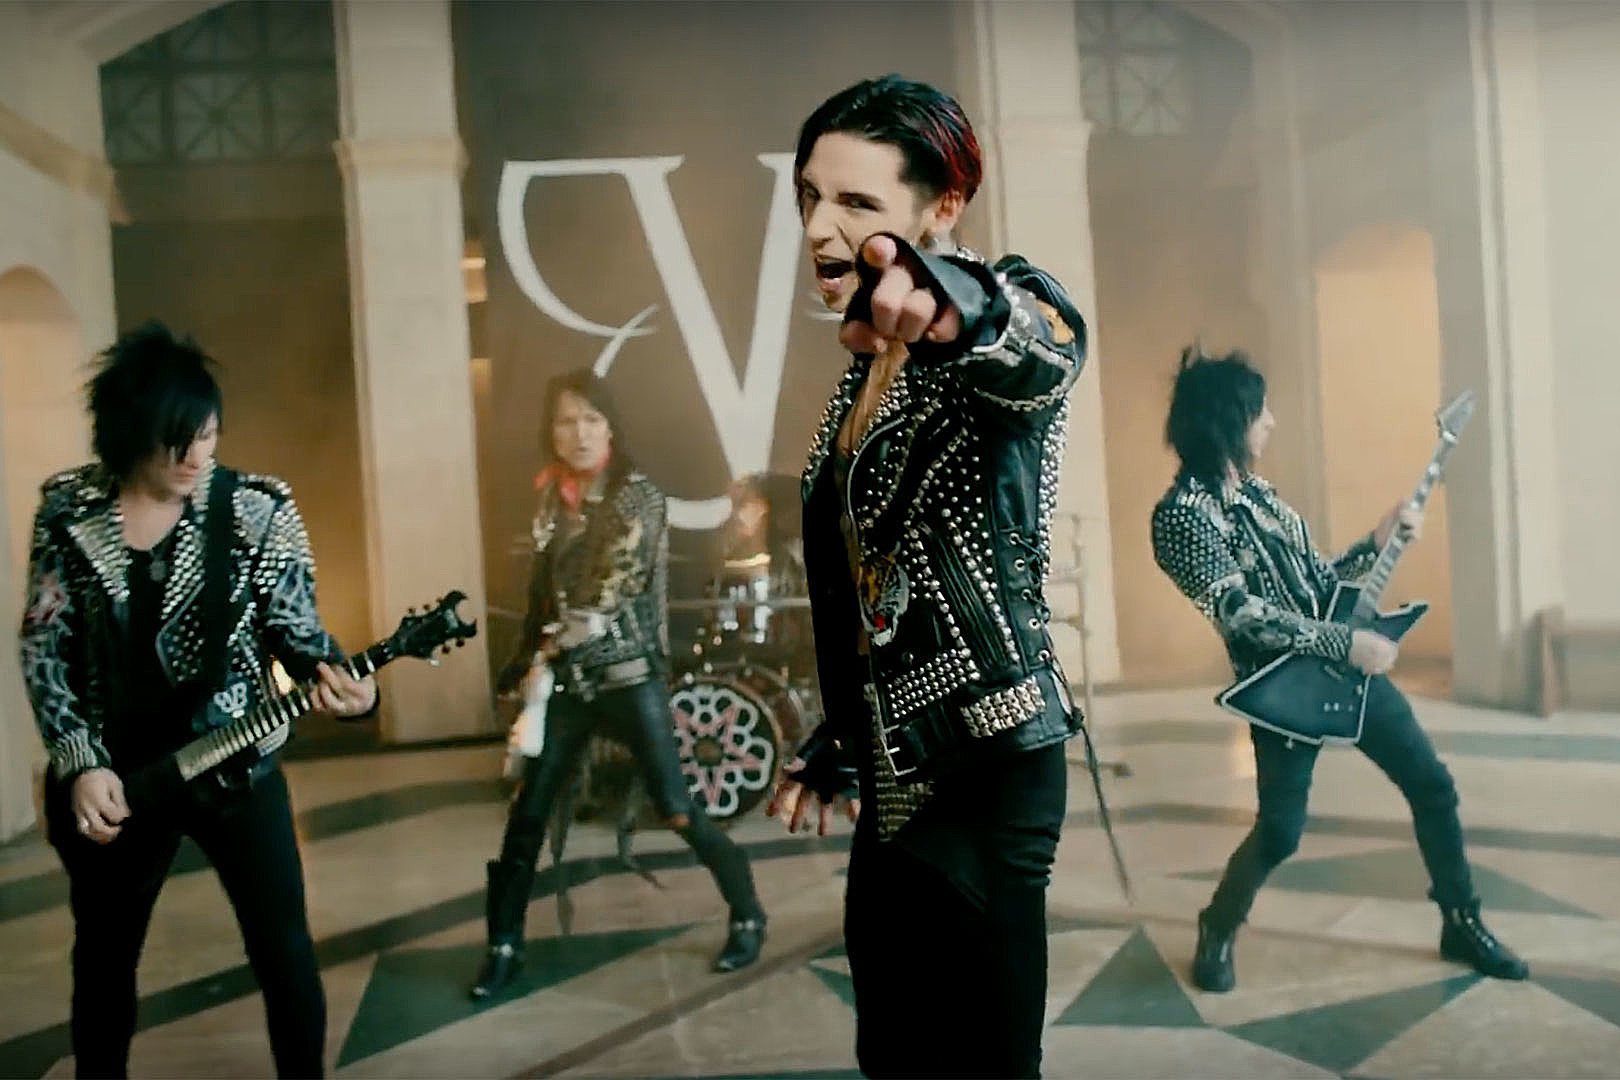 Black Veil Brides' Andy Black: 'There Are No Plans to Break Up'